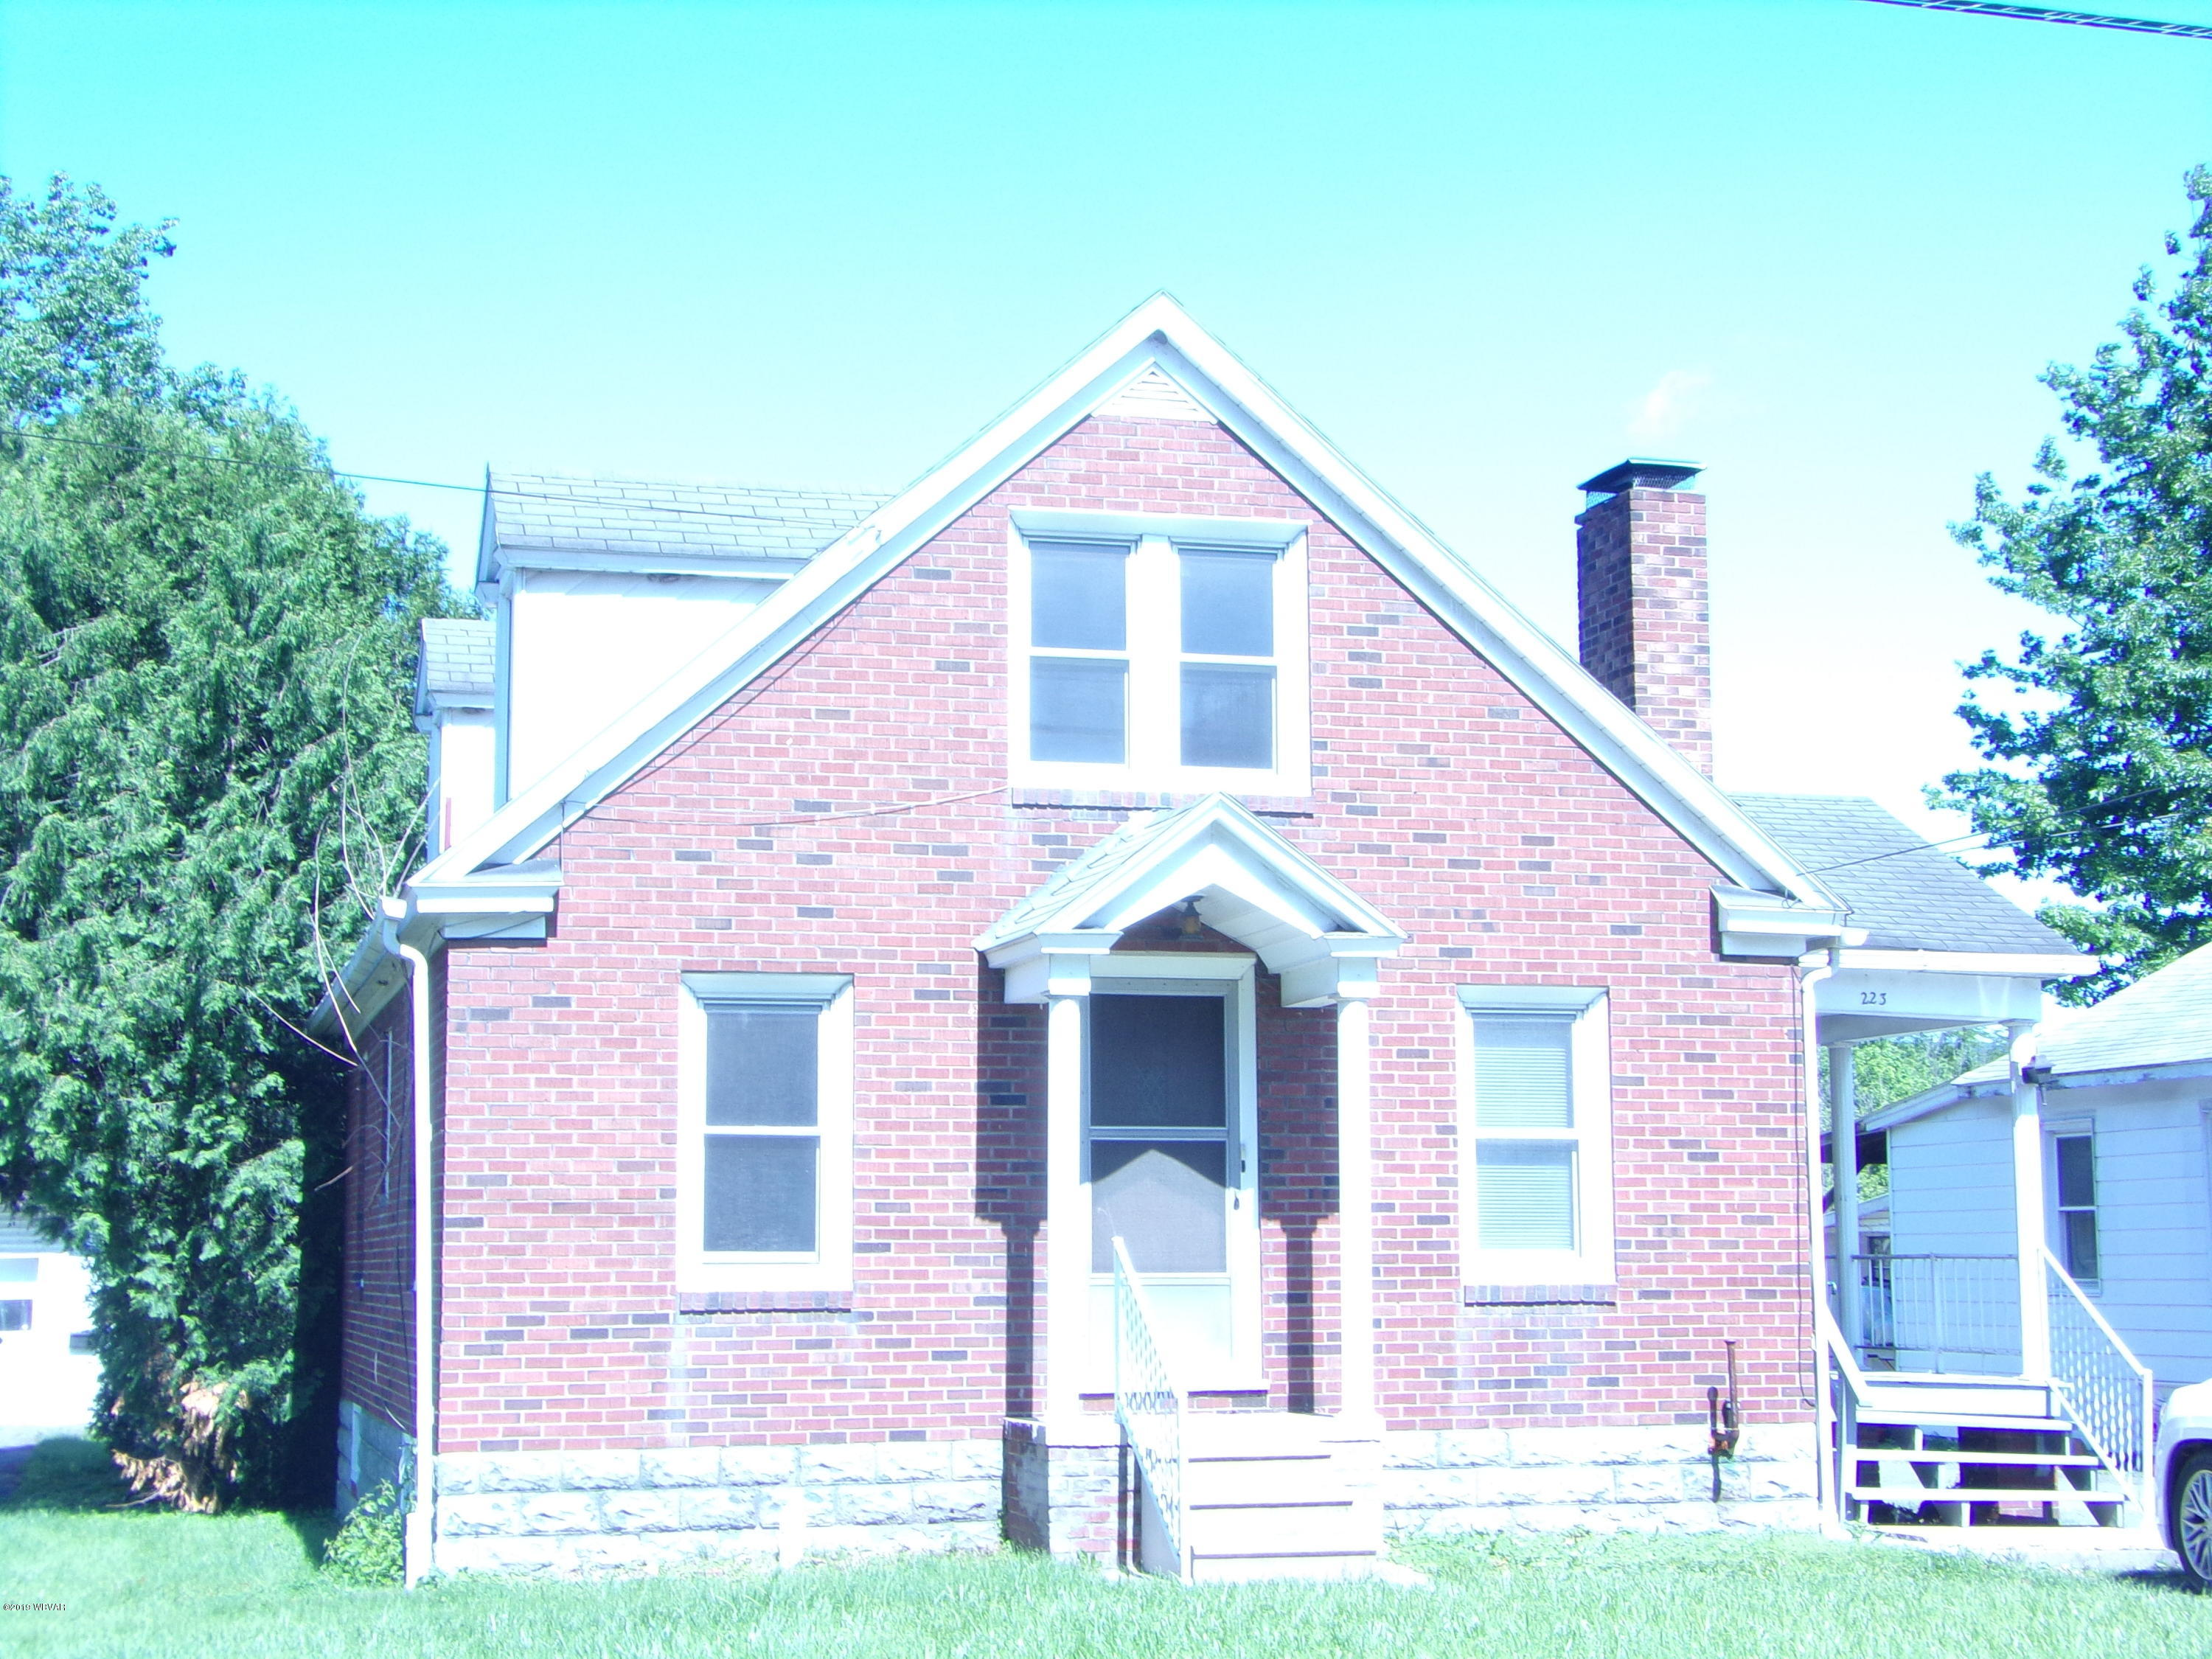 223 PENNSYLVANIA AVENUE, Mill Hall, PA 17751, 3 Bedrooms Bedrooms, ,1 BathroomBathrooms,Residential,For sale,PENNSYLVANIA,WB-88032